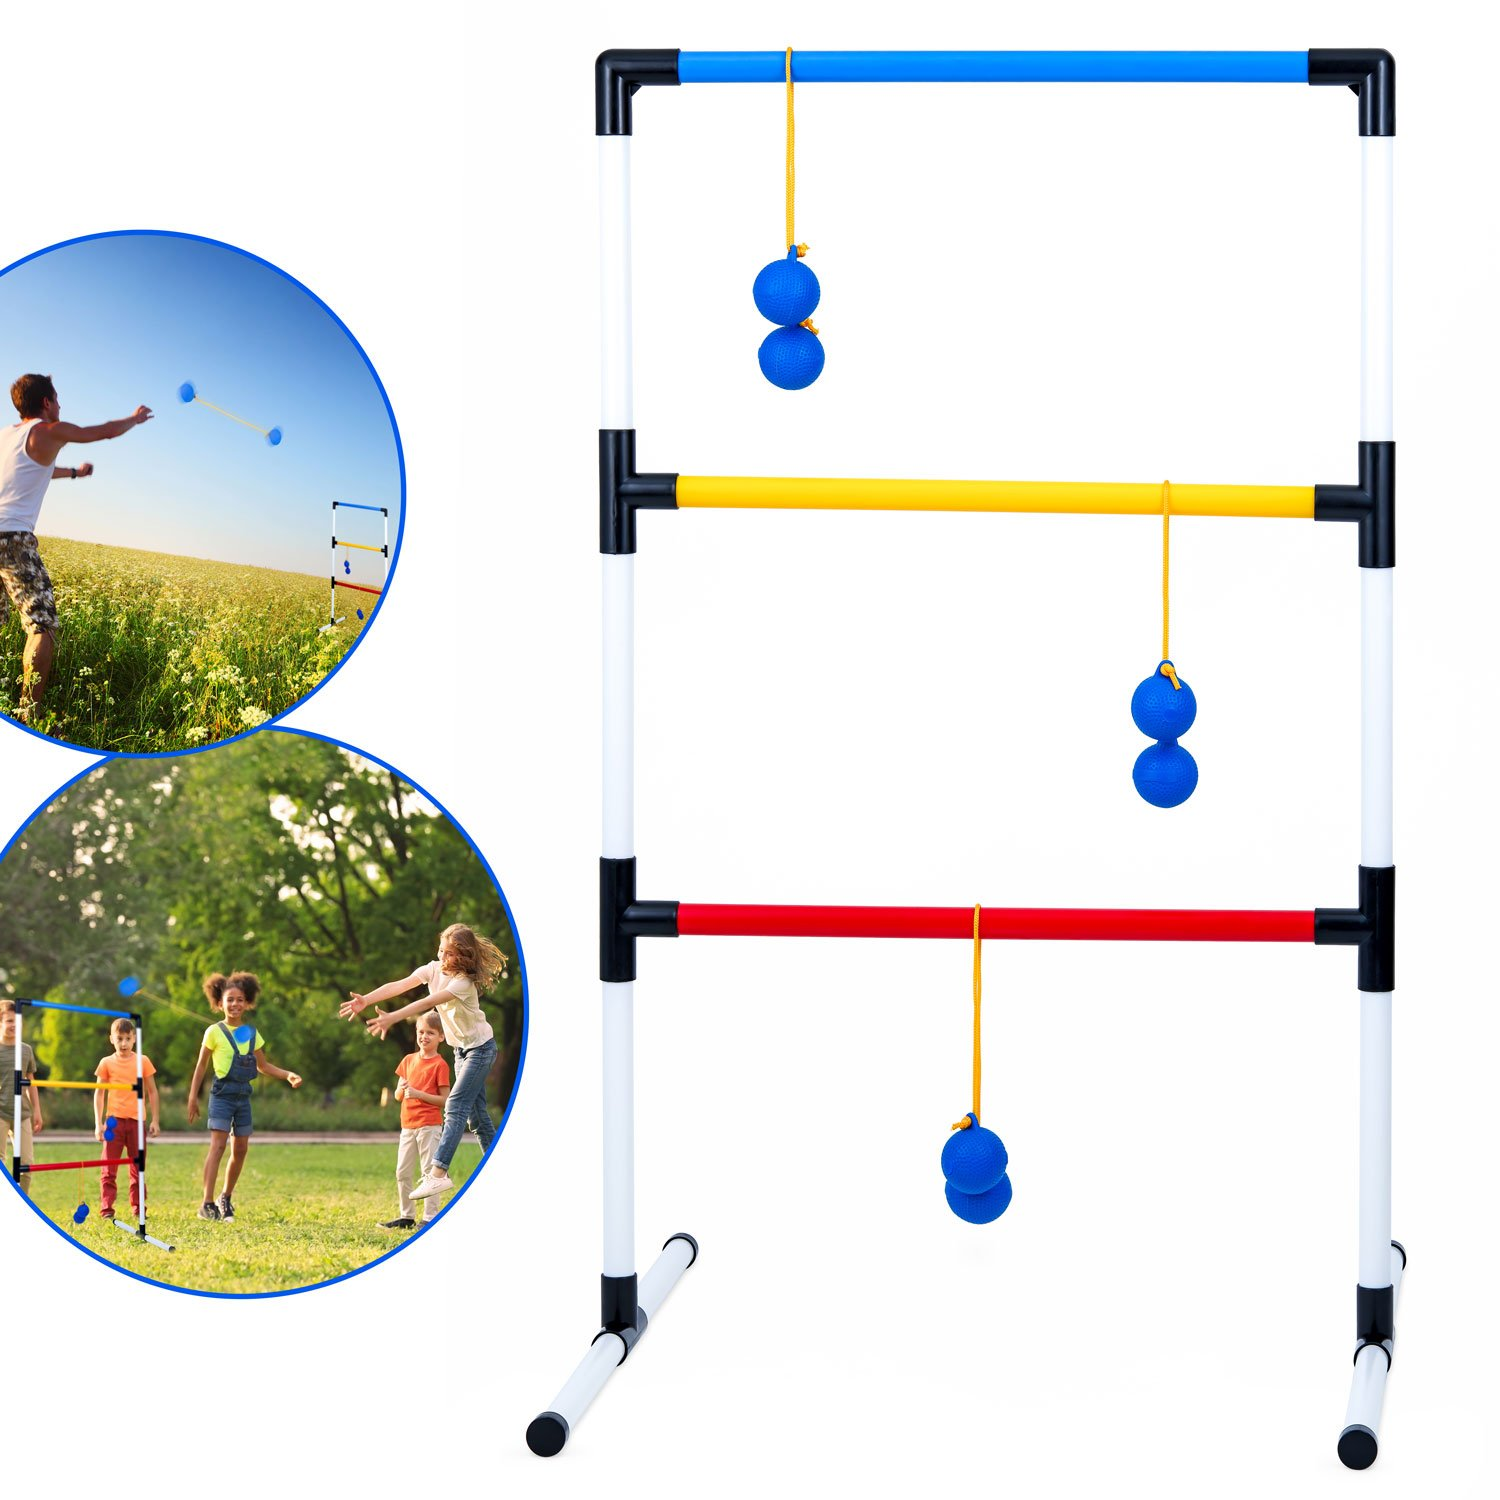 Ideas In Life One Piece Ladder Ball Game Set - Indoor & Outdoor Games for Adults and Kids – Hillbilly Golf Backyard Toys Ladder Golf Toss Game and 3 Bolas by Ideas In Life